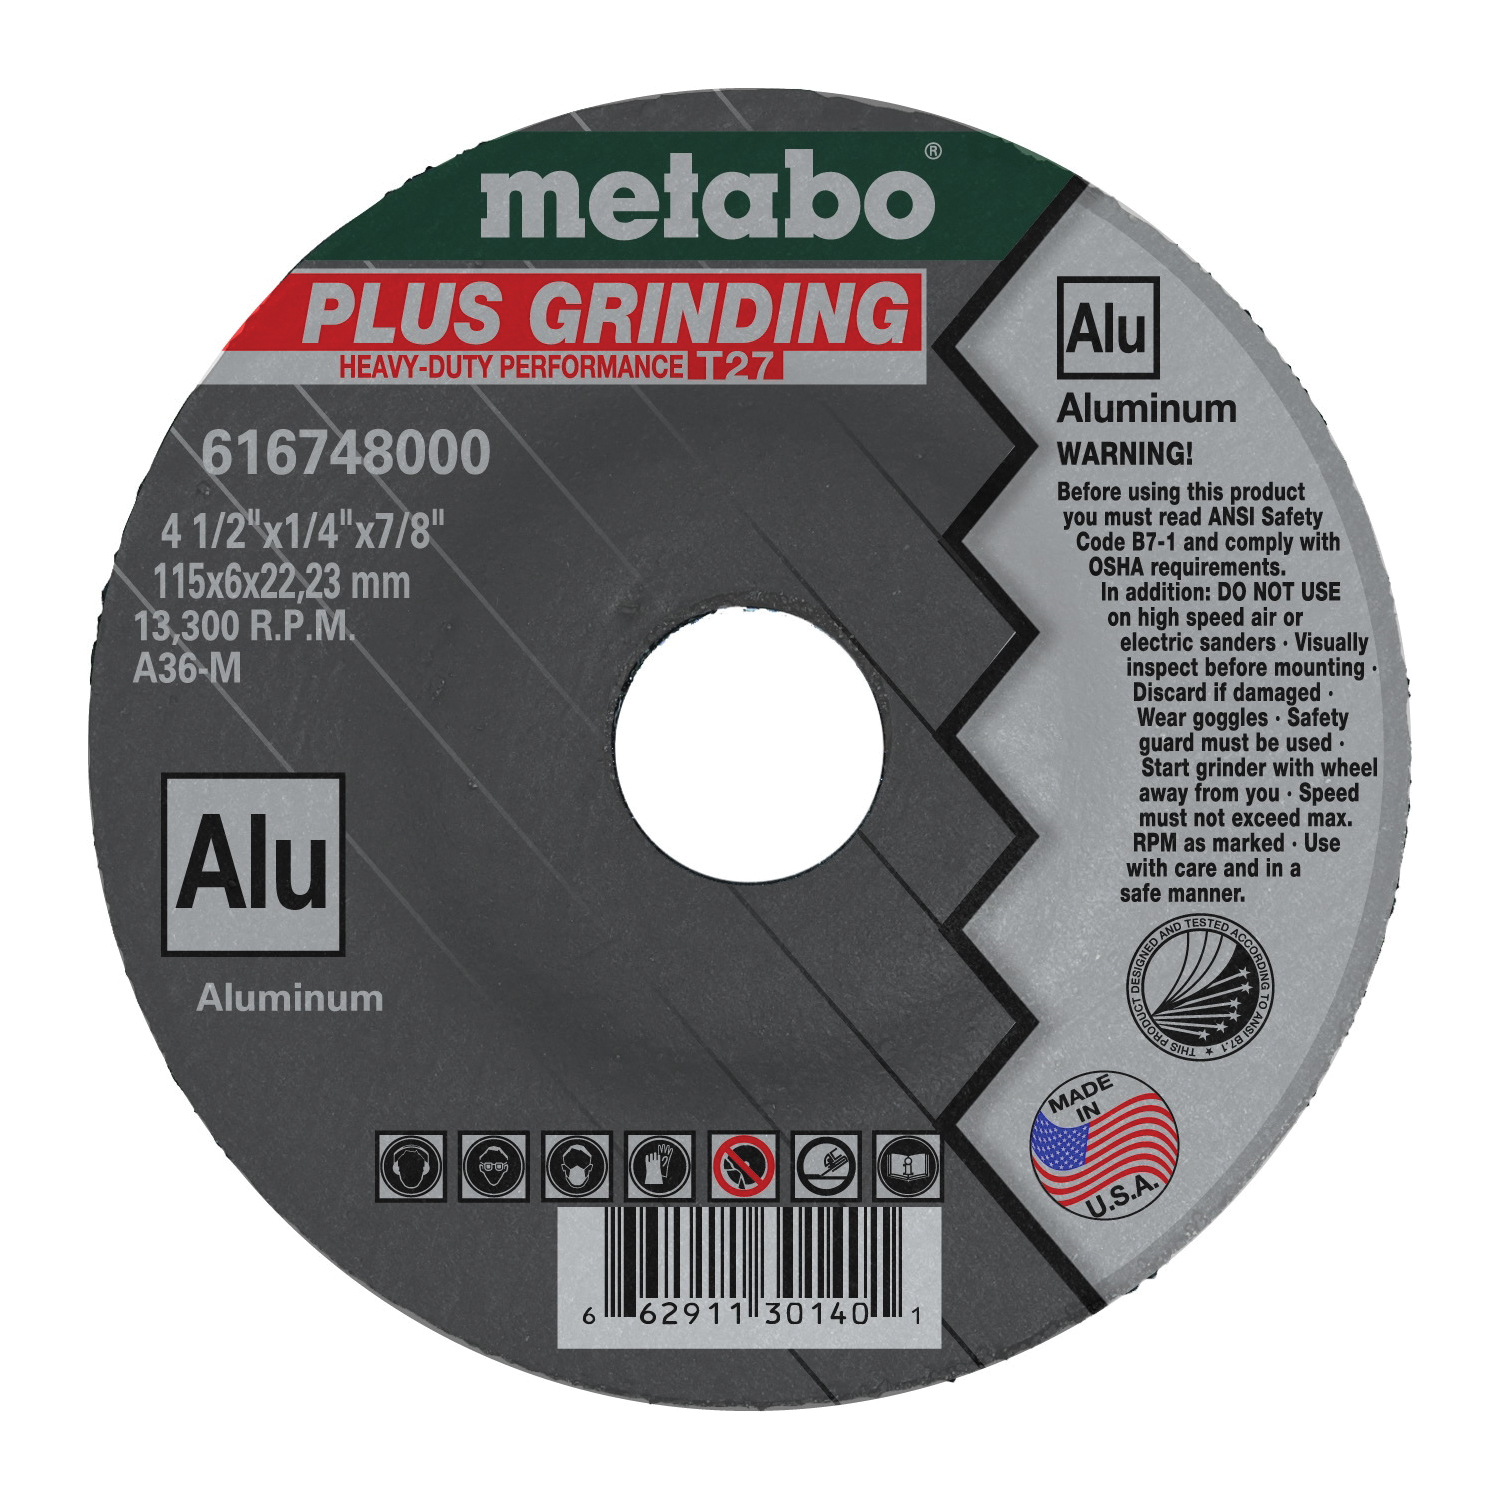 metabo® 616748000 Plus Grinding Type 27 Aggressive Cool Cutting Depressed Center Wheel, 4-1/2 in Dia x 1/4 in THK, 7/8 in Center Hole, A36M Grit, Aluminum Oxide Abrasive